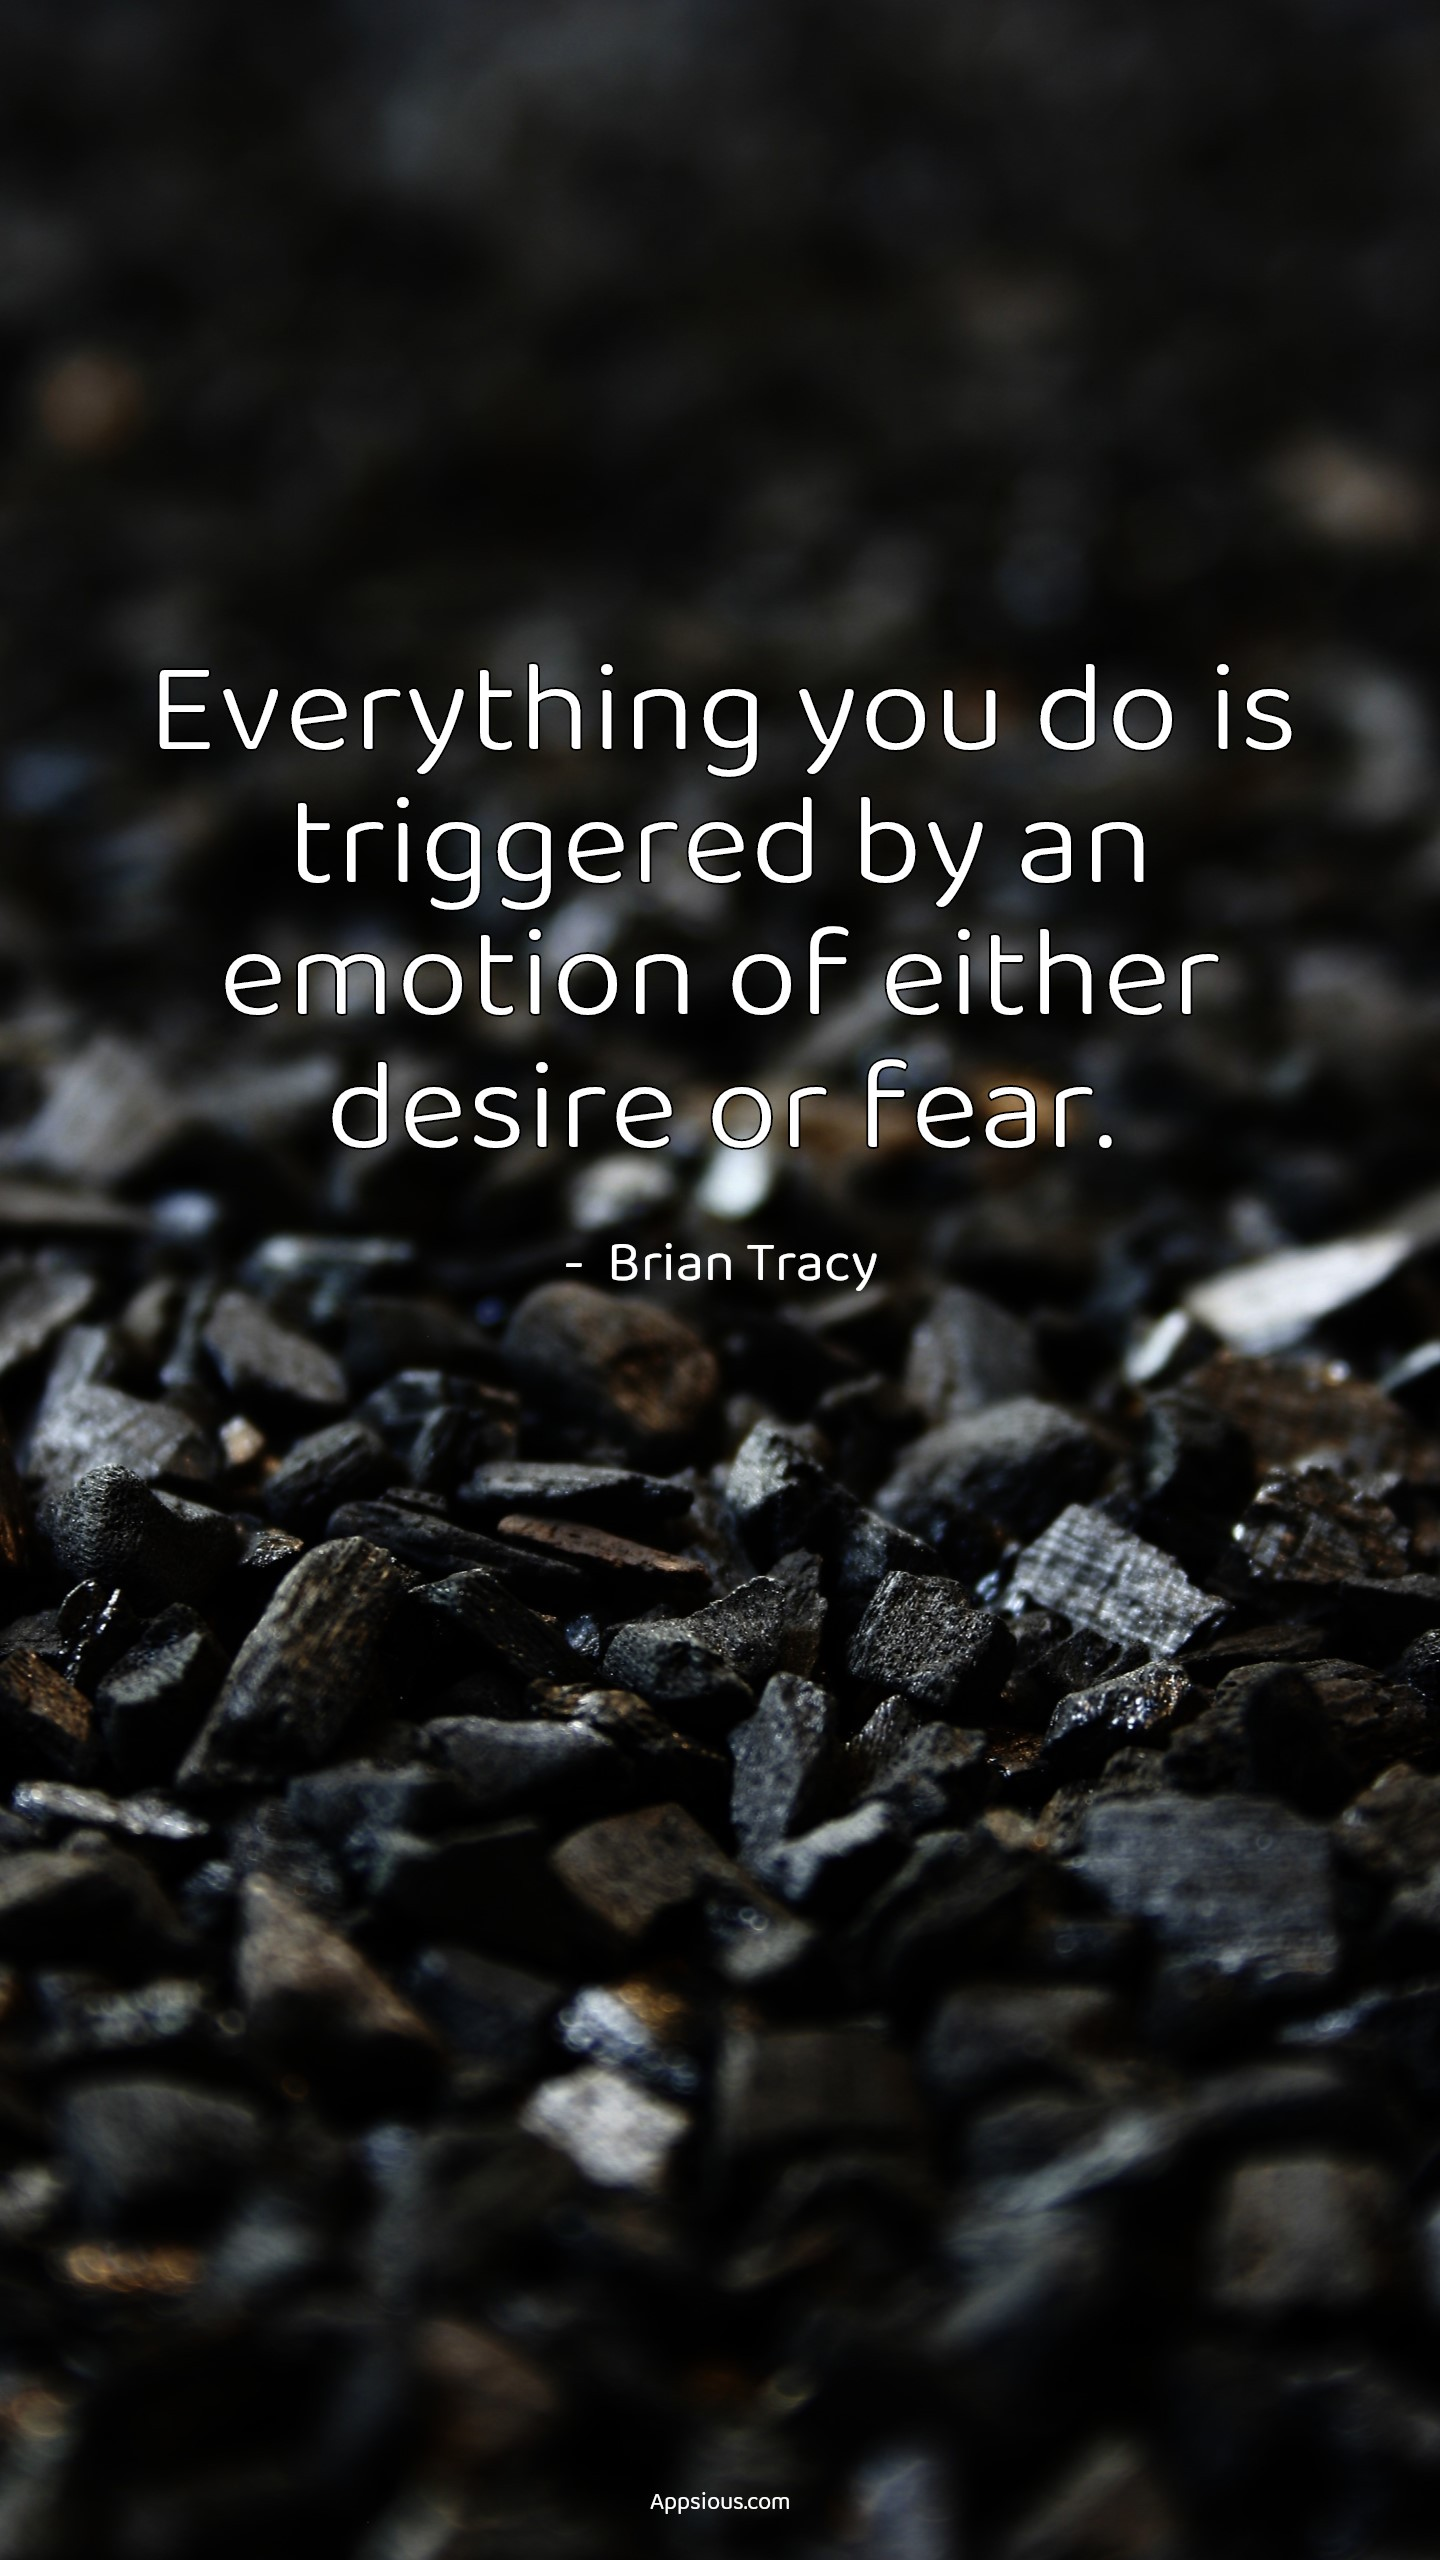 Everything you do is triggered by an emotion of either desire or fear.